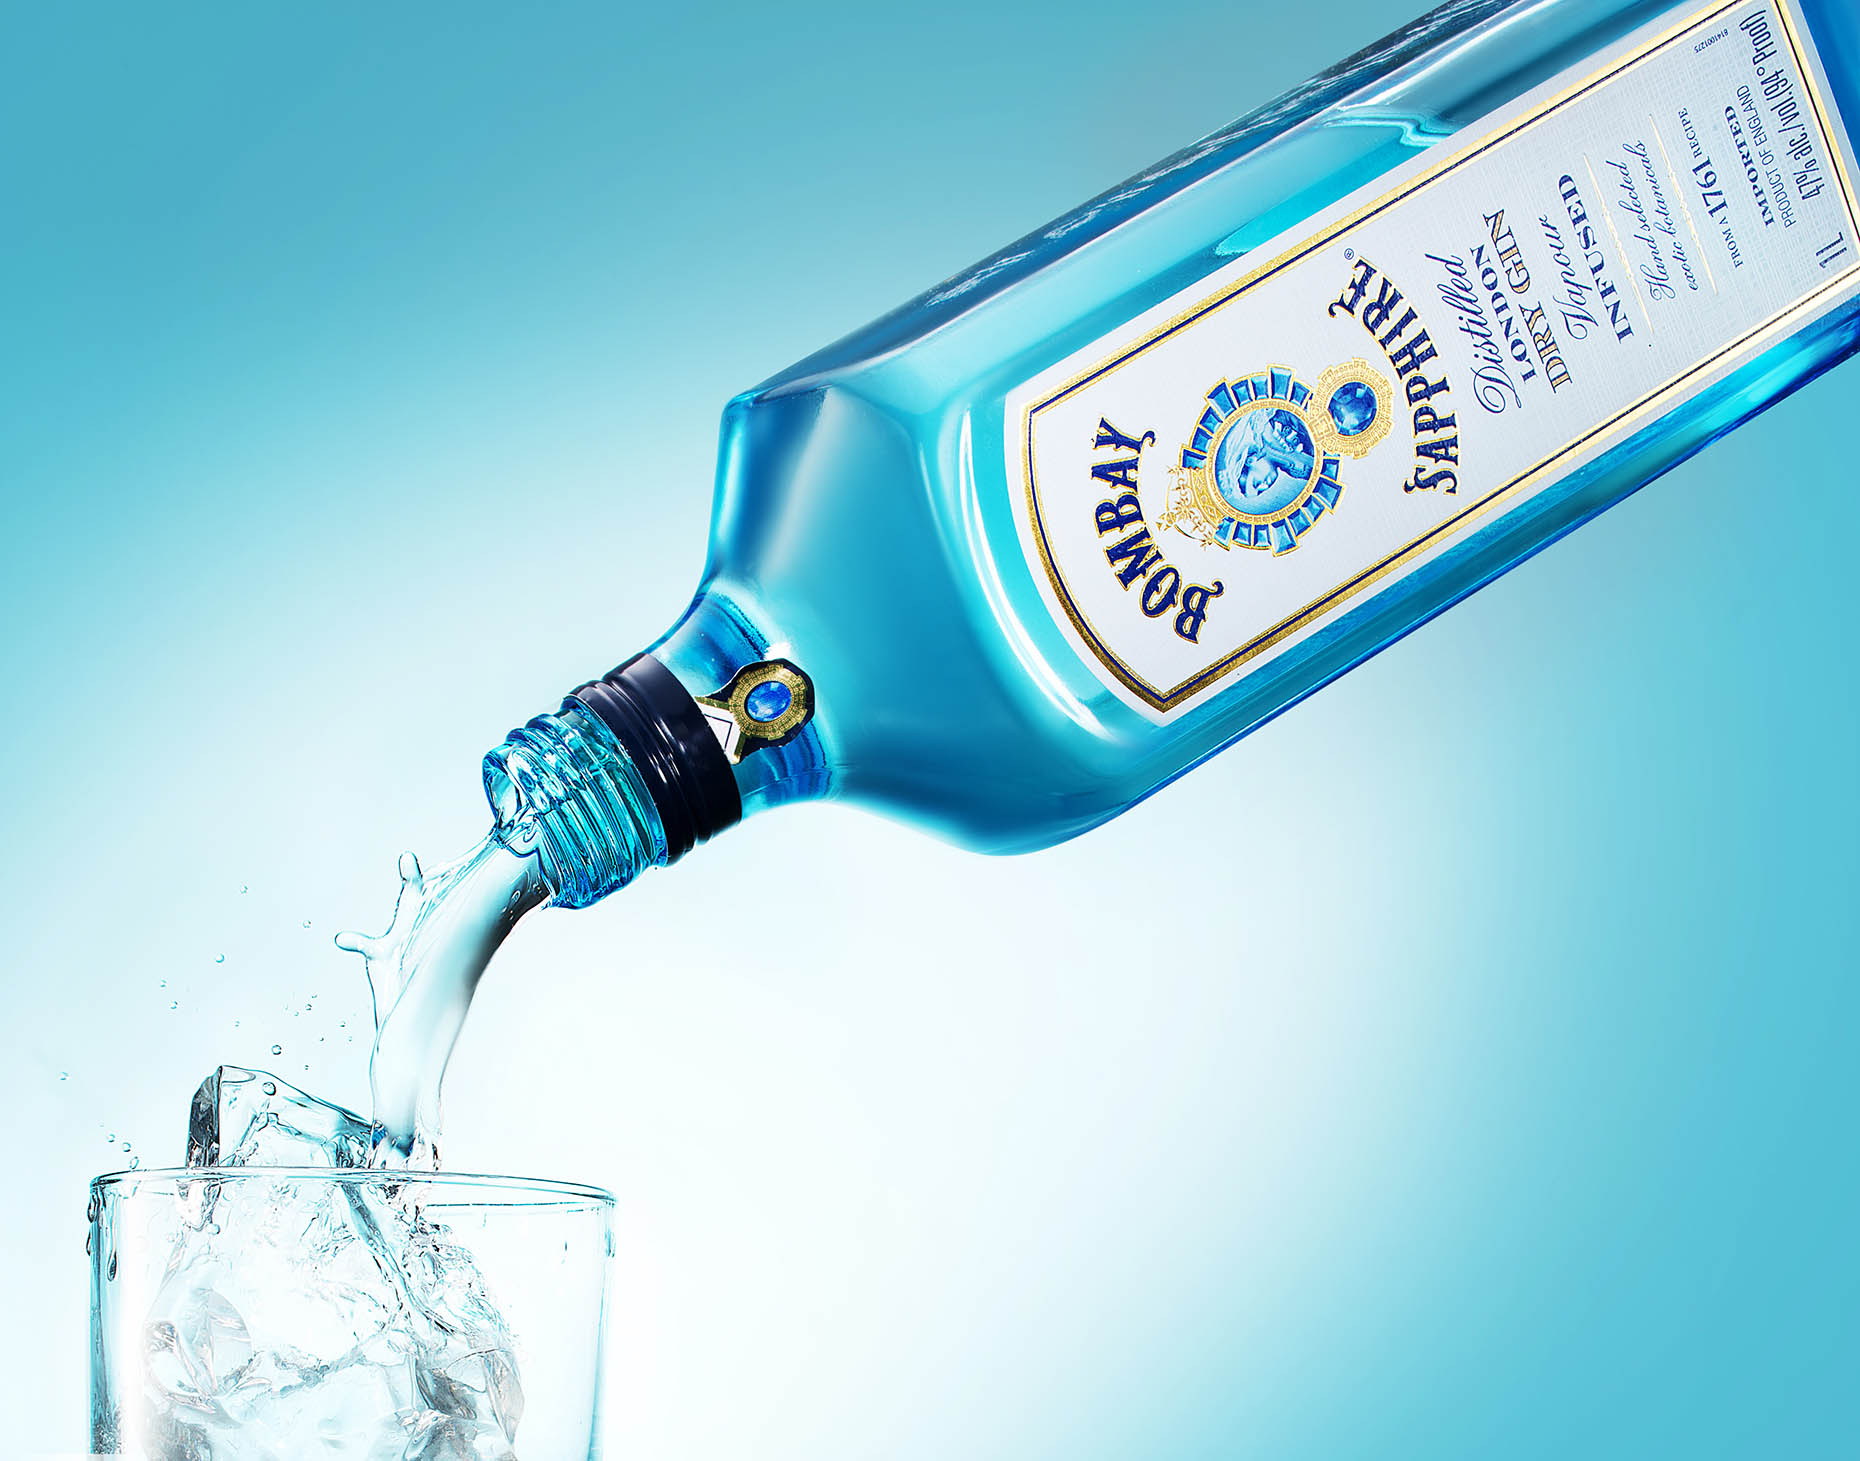 New-york-Beverage-phtogrsaphy-Bombay-pour-